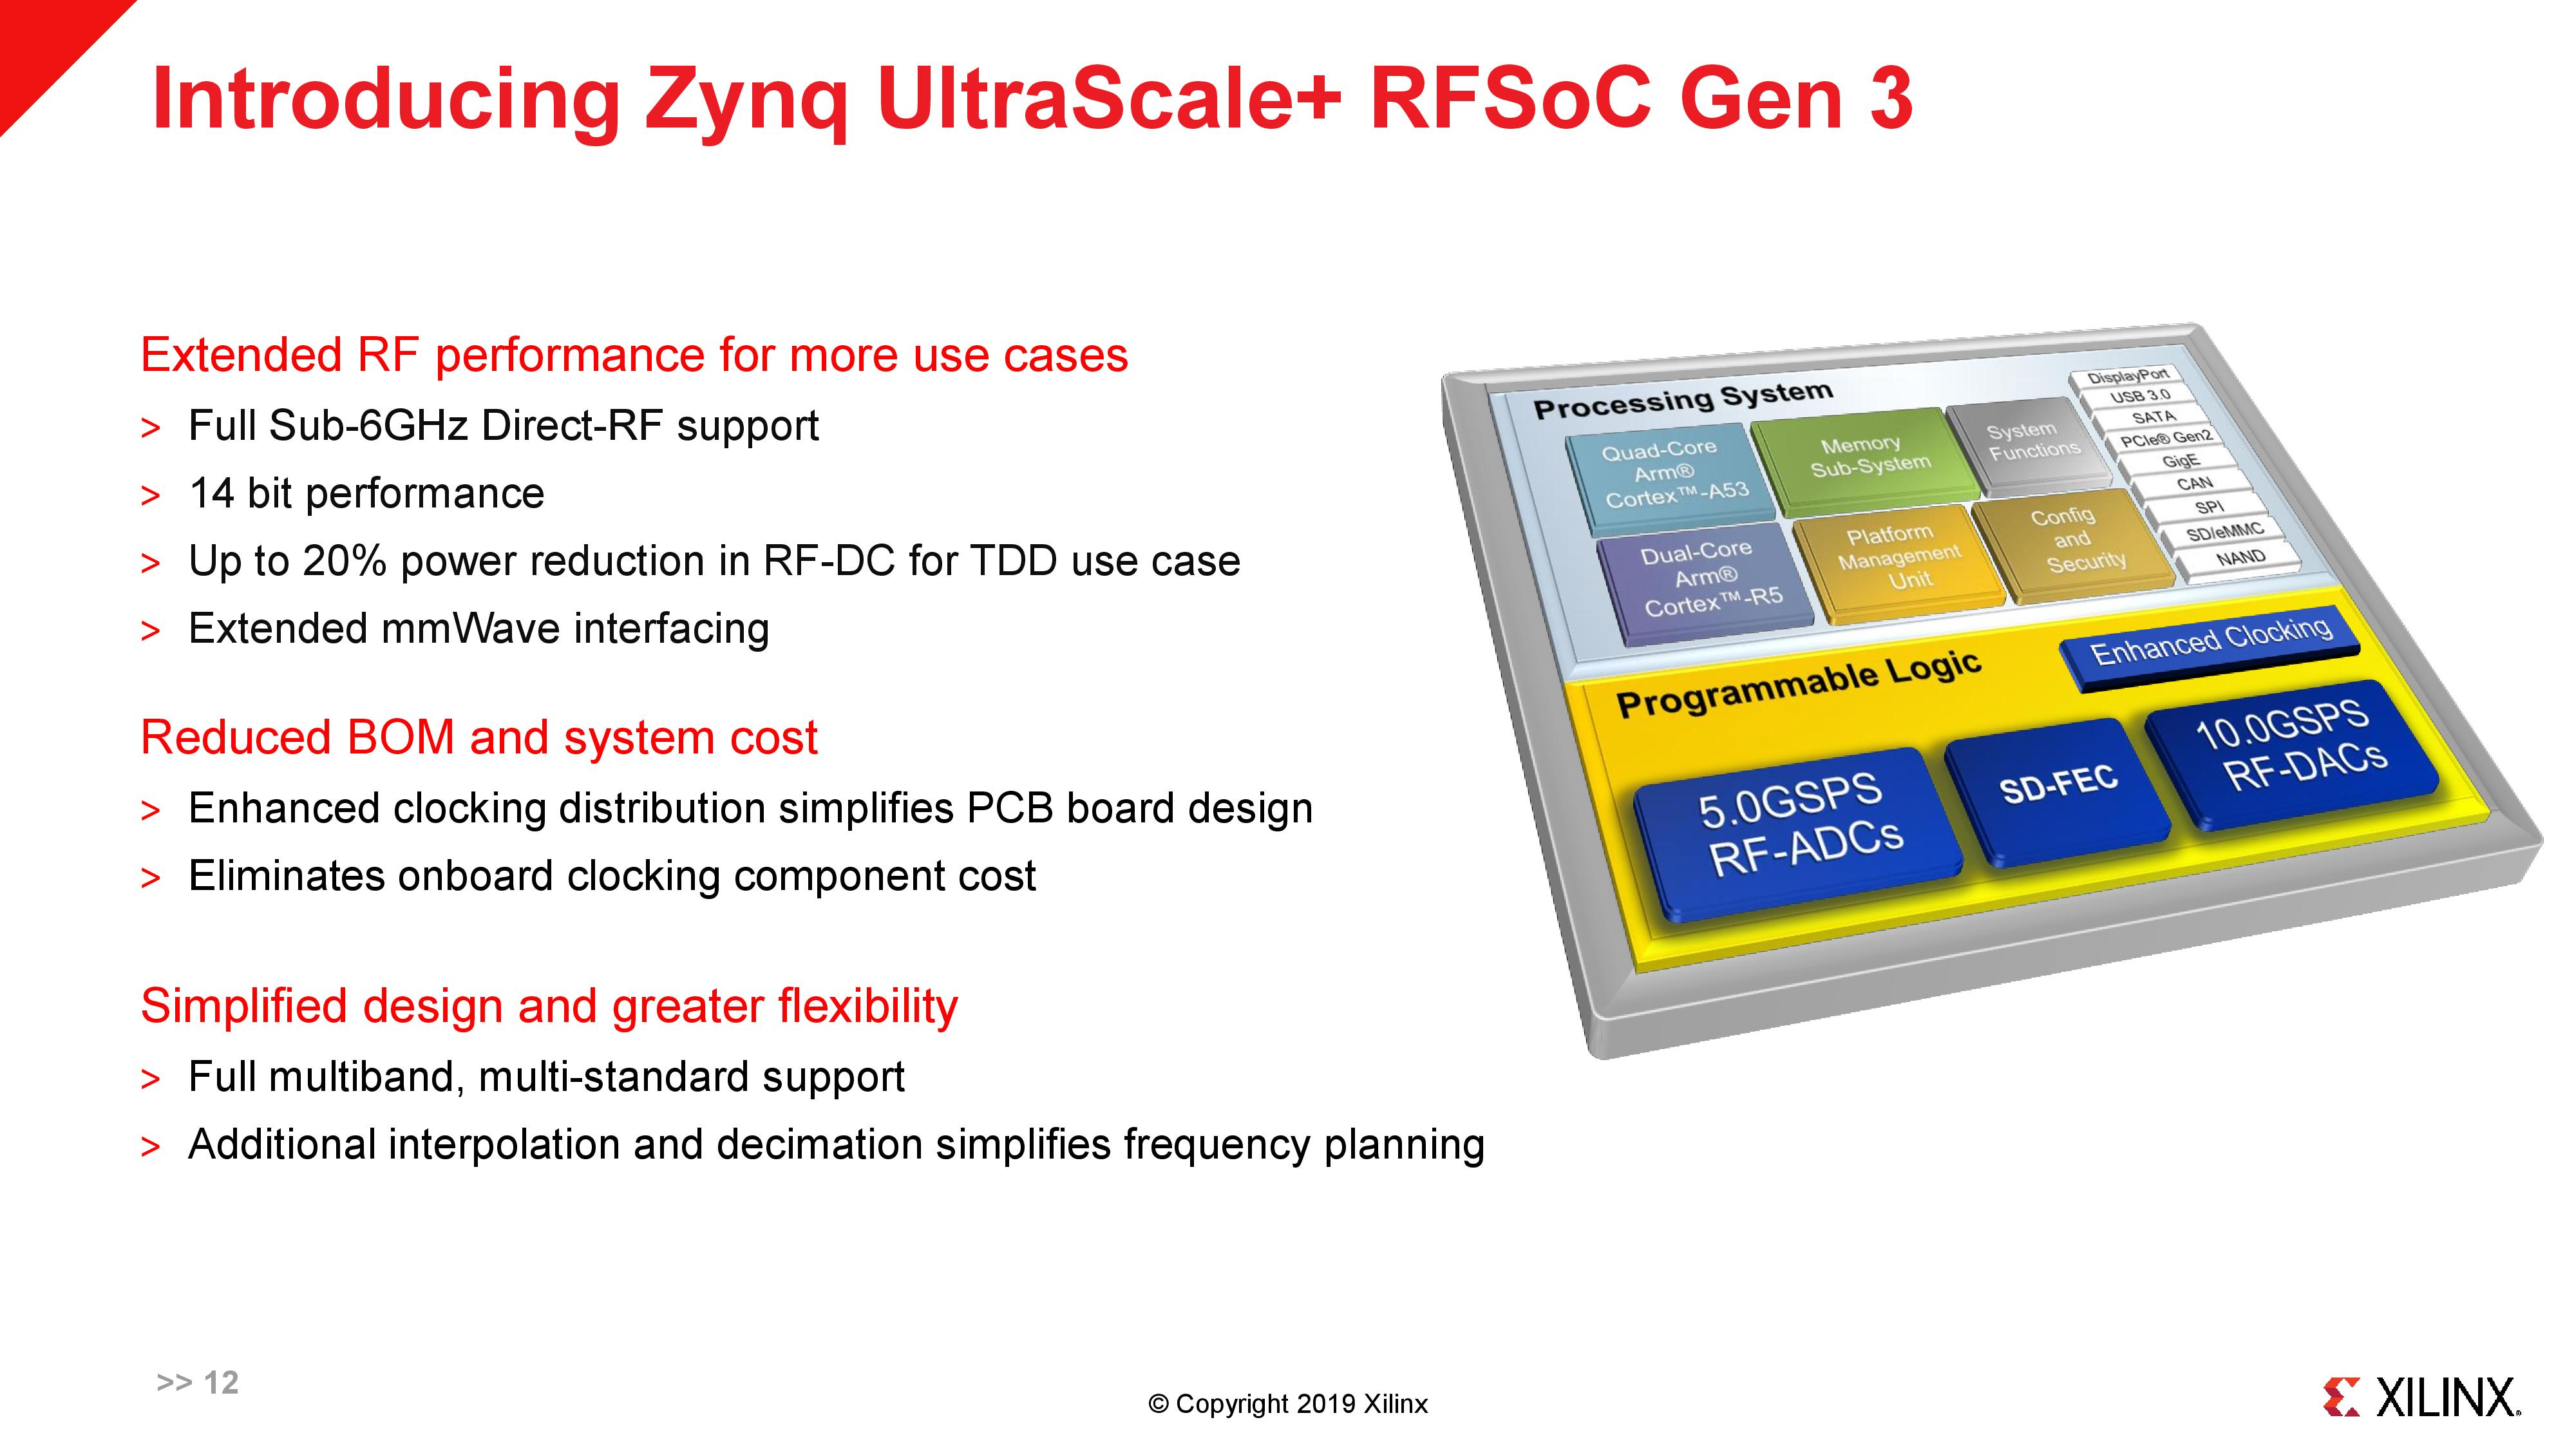 Xilinx Announce New RFSoCs for 5G, Covering Sub-6 GHz and mmWave